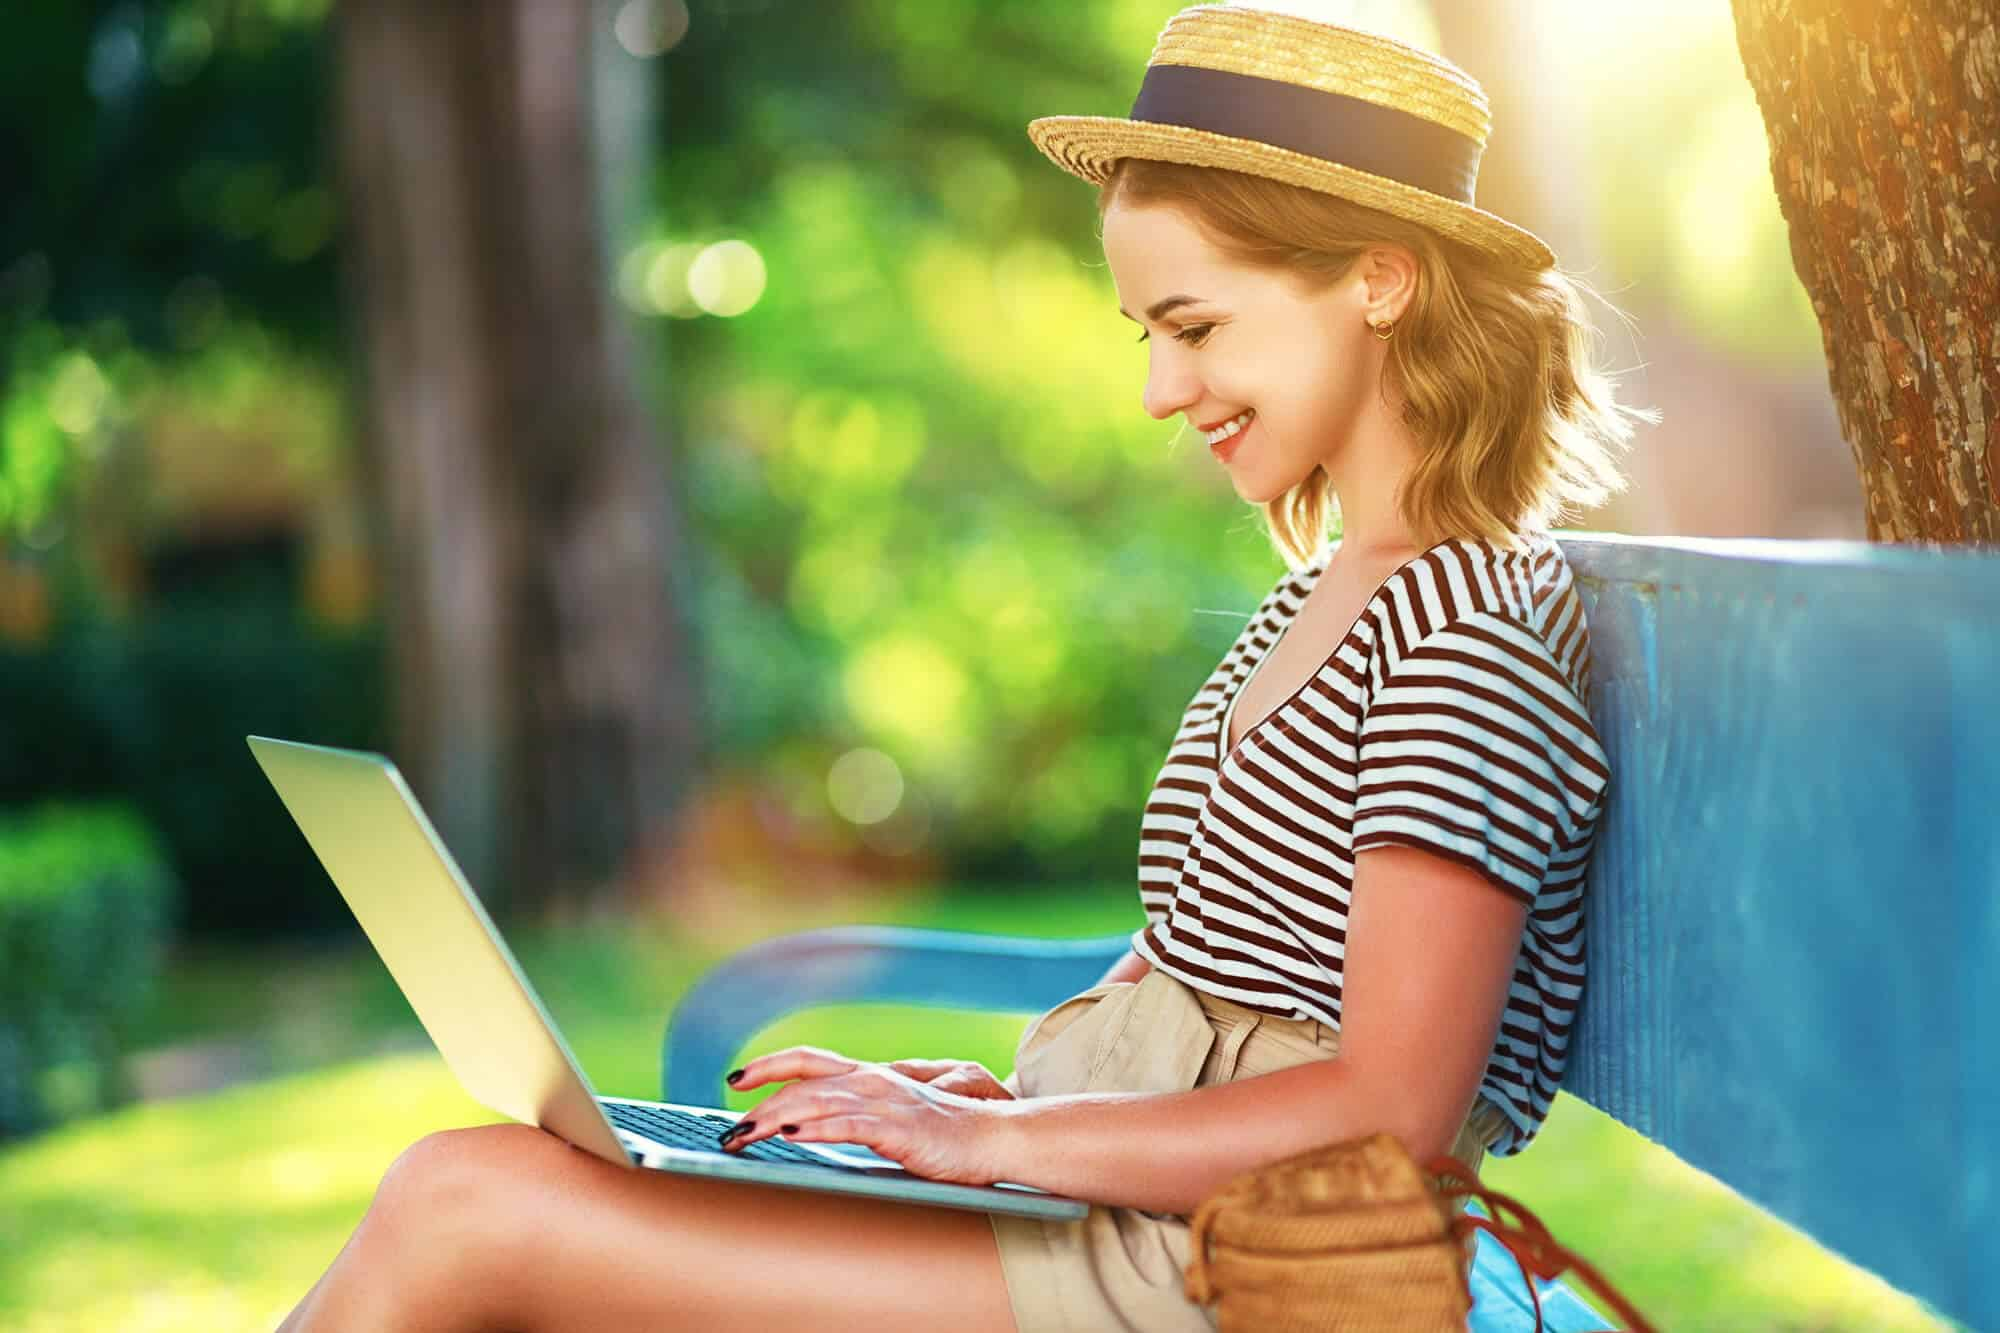 Female college student sitting on a bench in a park smiling at her computer